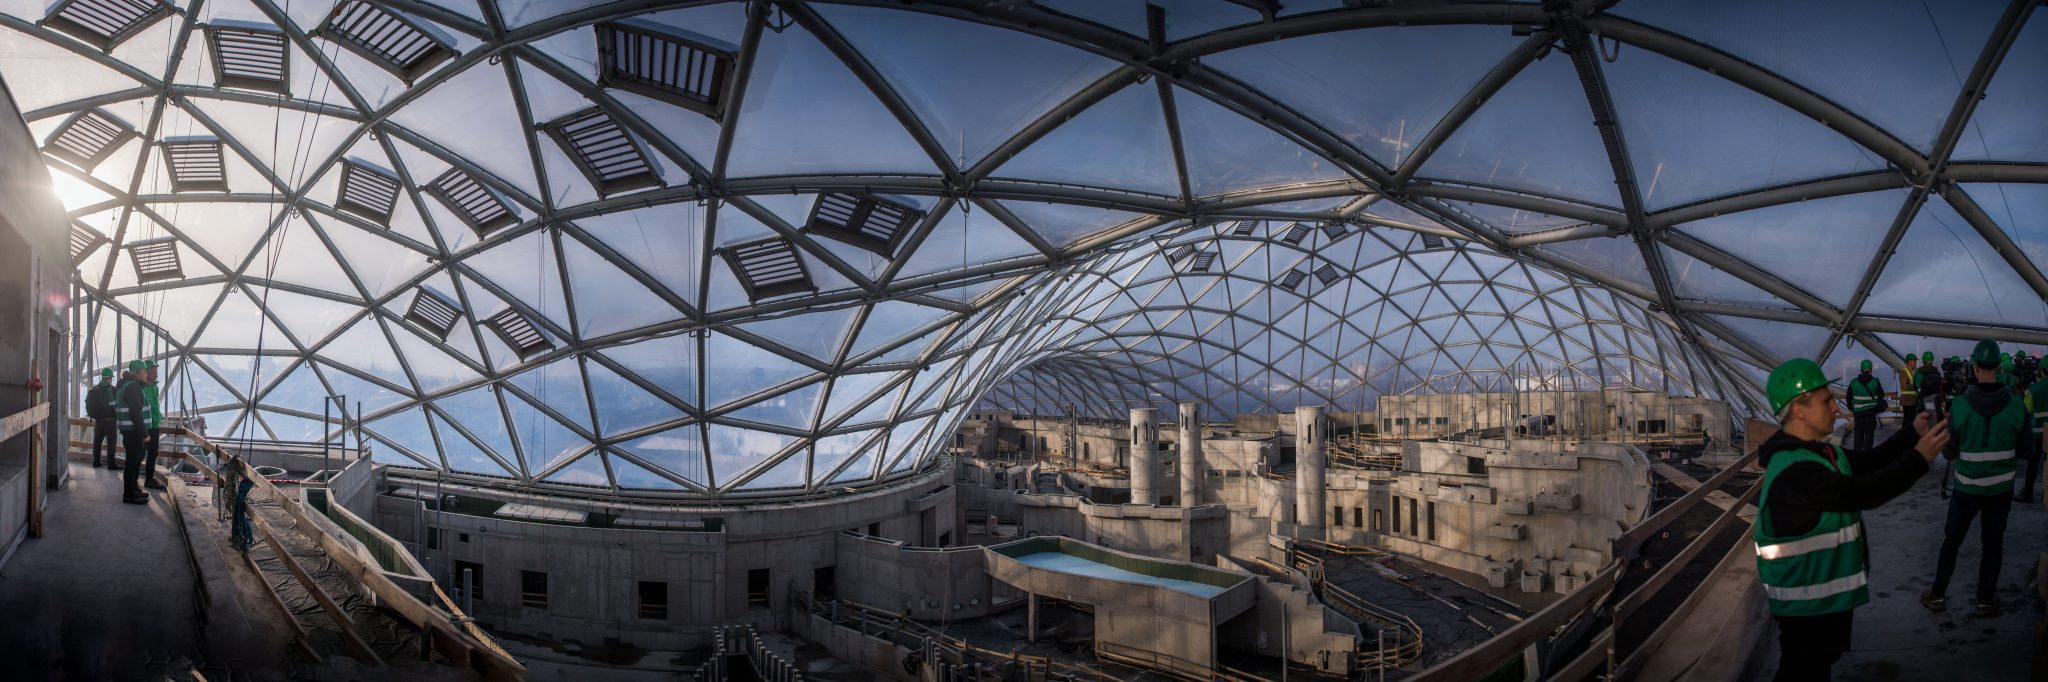 Gov't Commissioner Blames Zoo Director for Risk of Biodome Incompletion post's picture